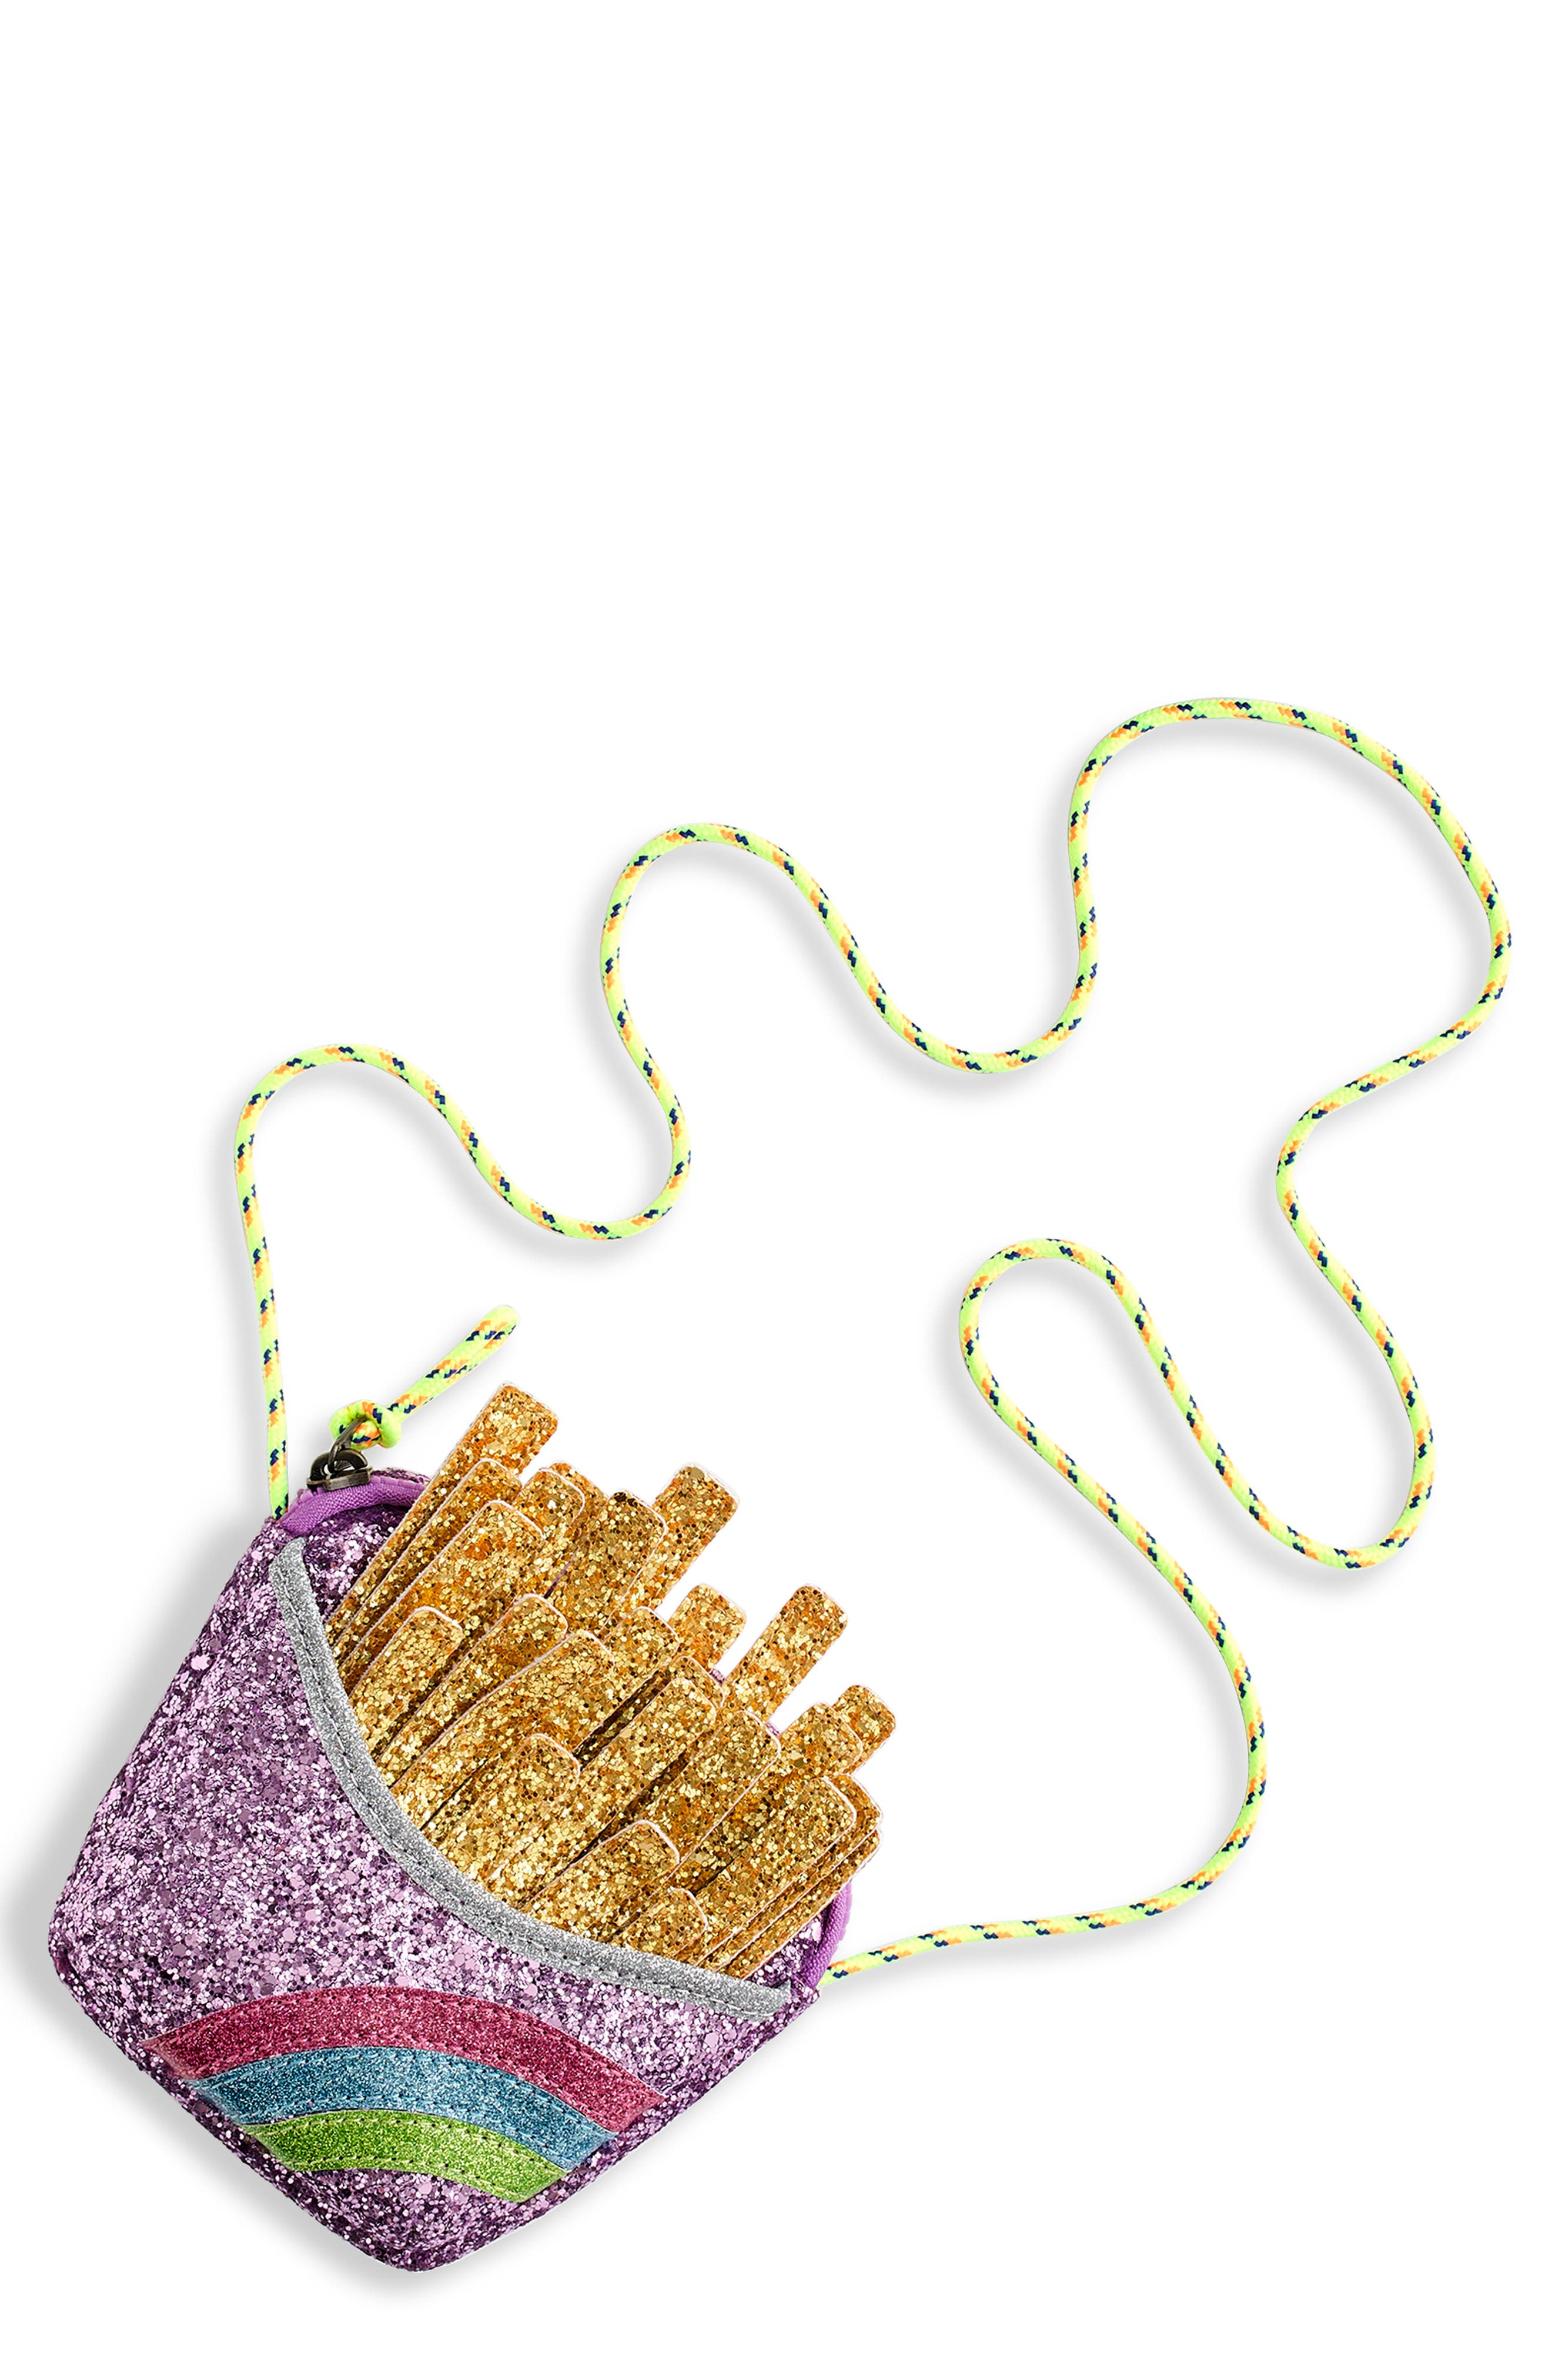 CREWCUTS BY J.CREW, French Fries Bag, Main thumbnail 1, color, RAINBOW